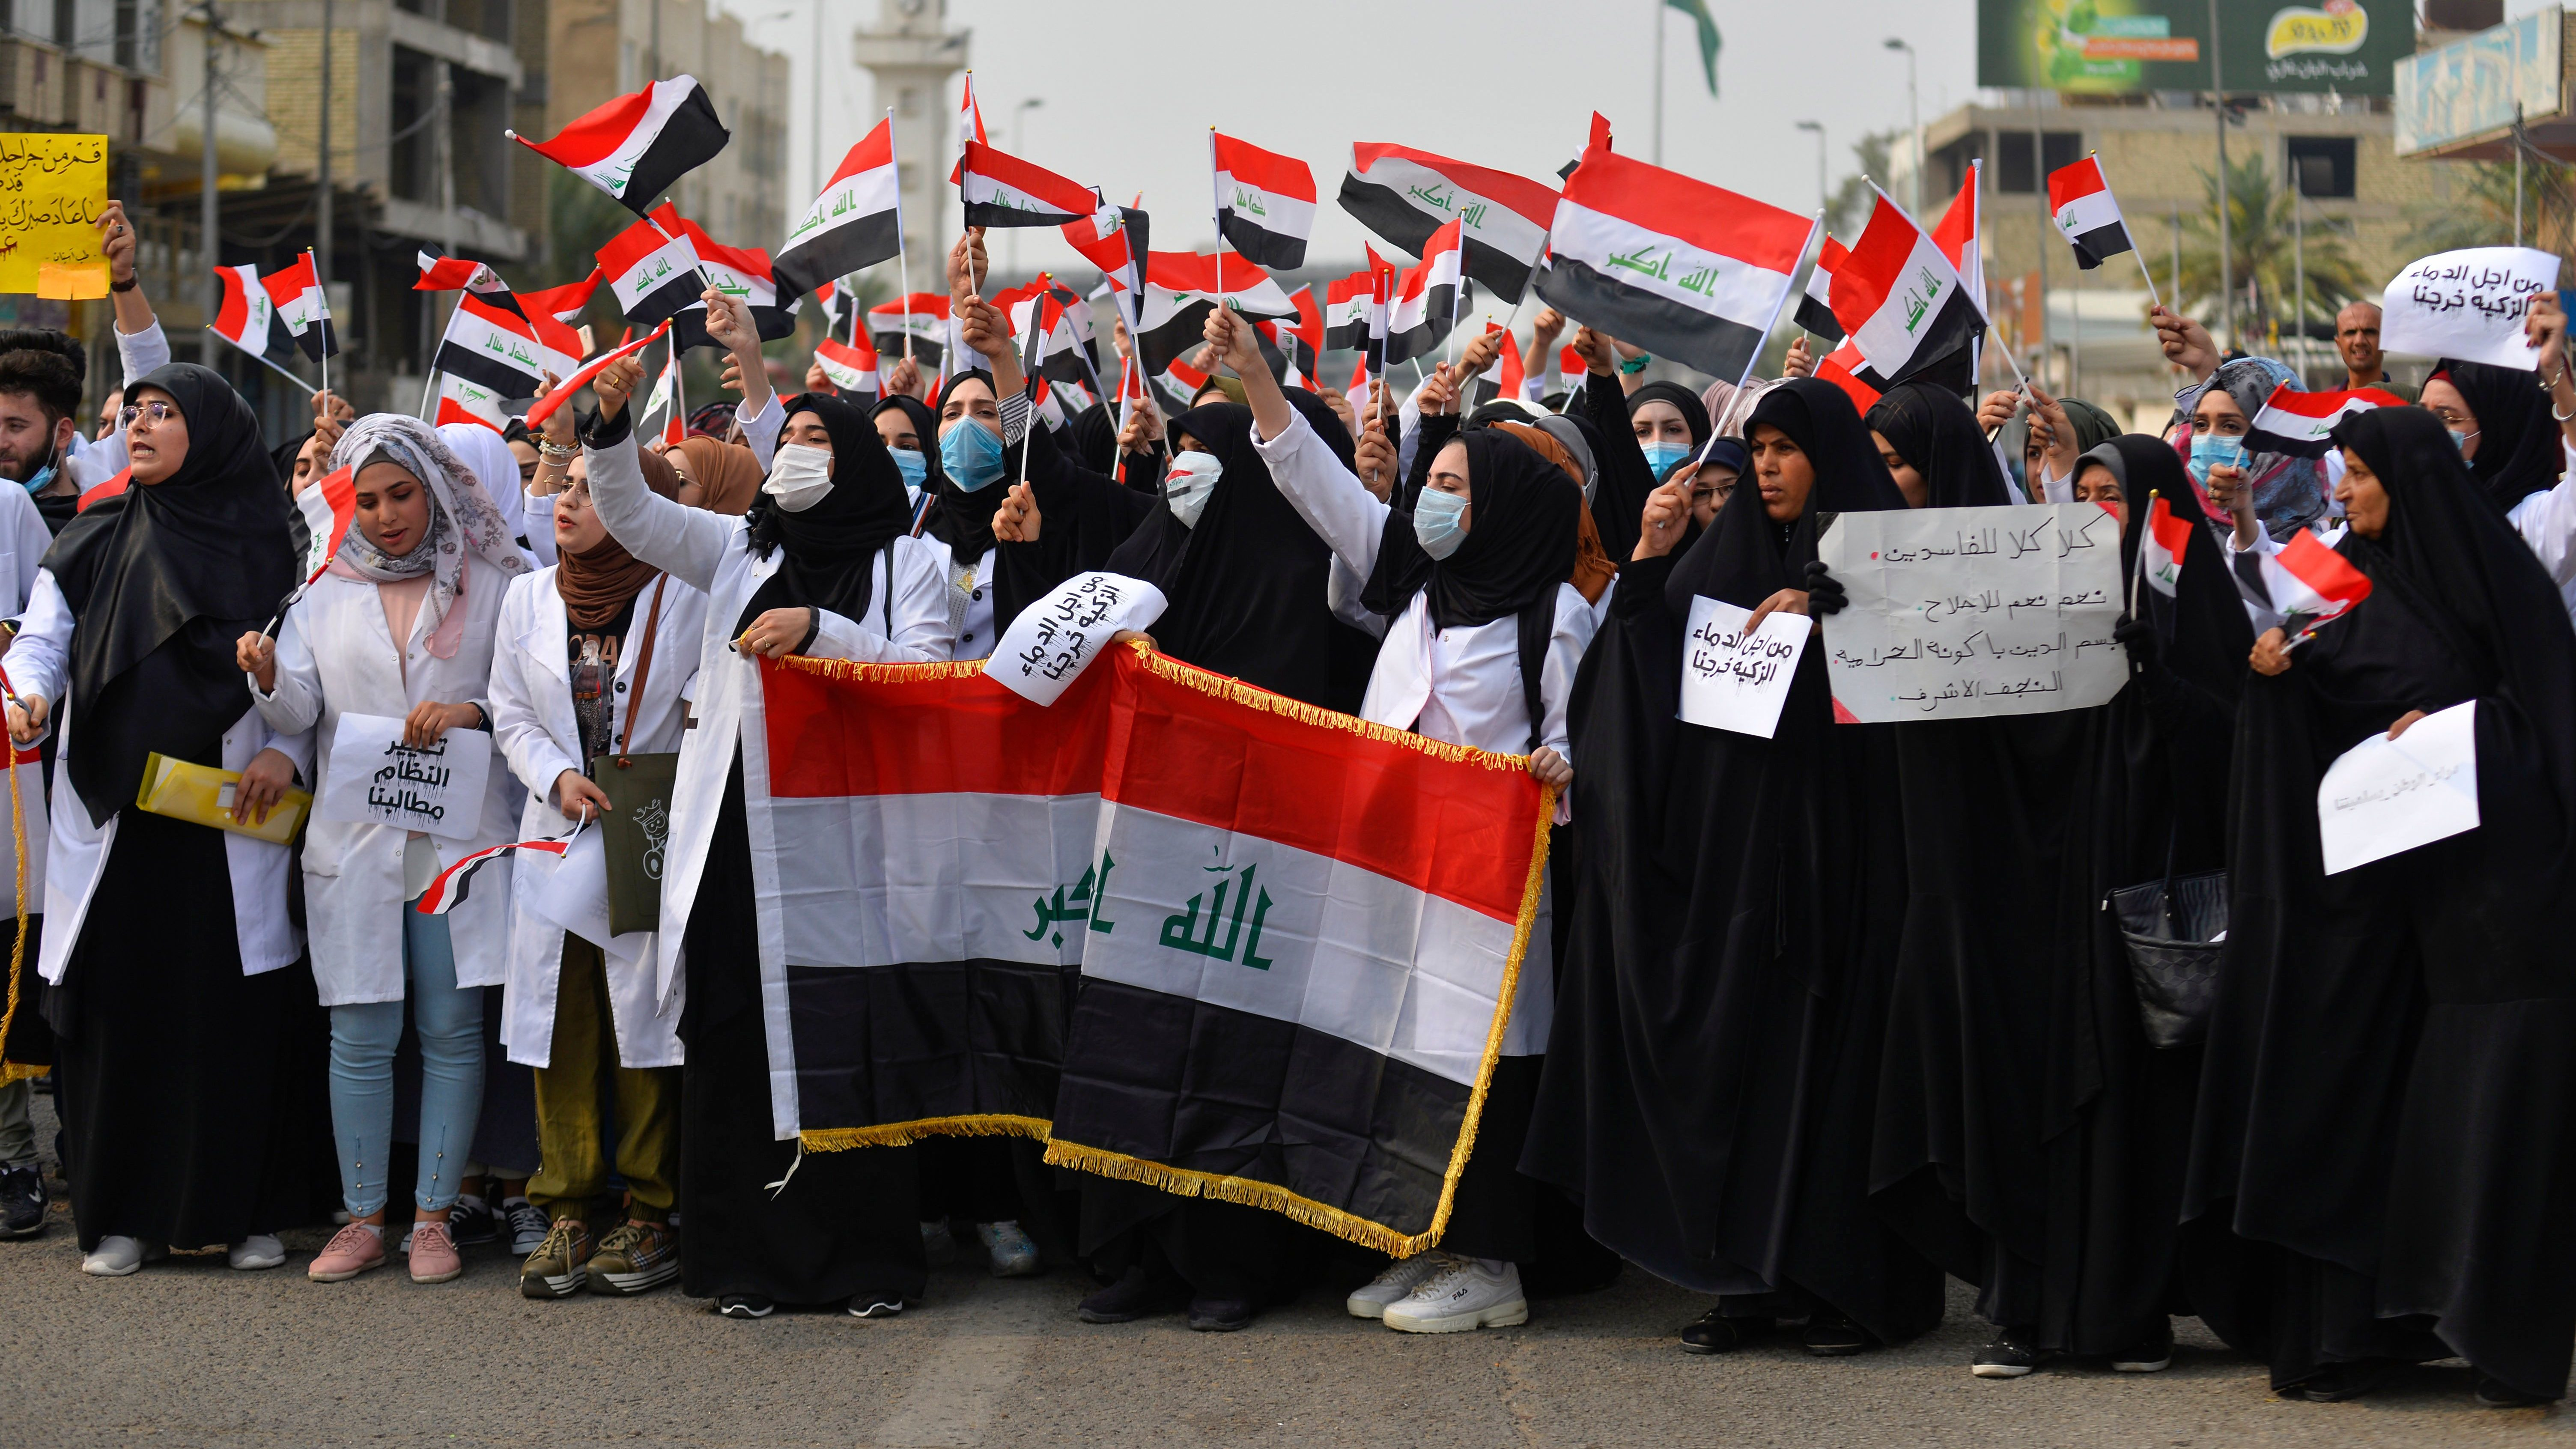 Iraqi Teachers Union Stands With Protesters